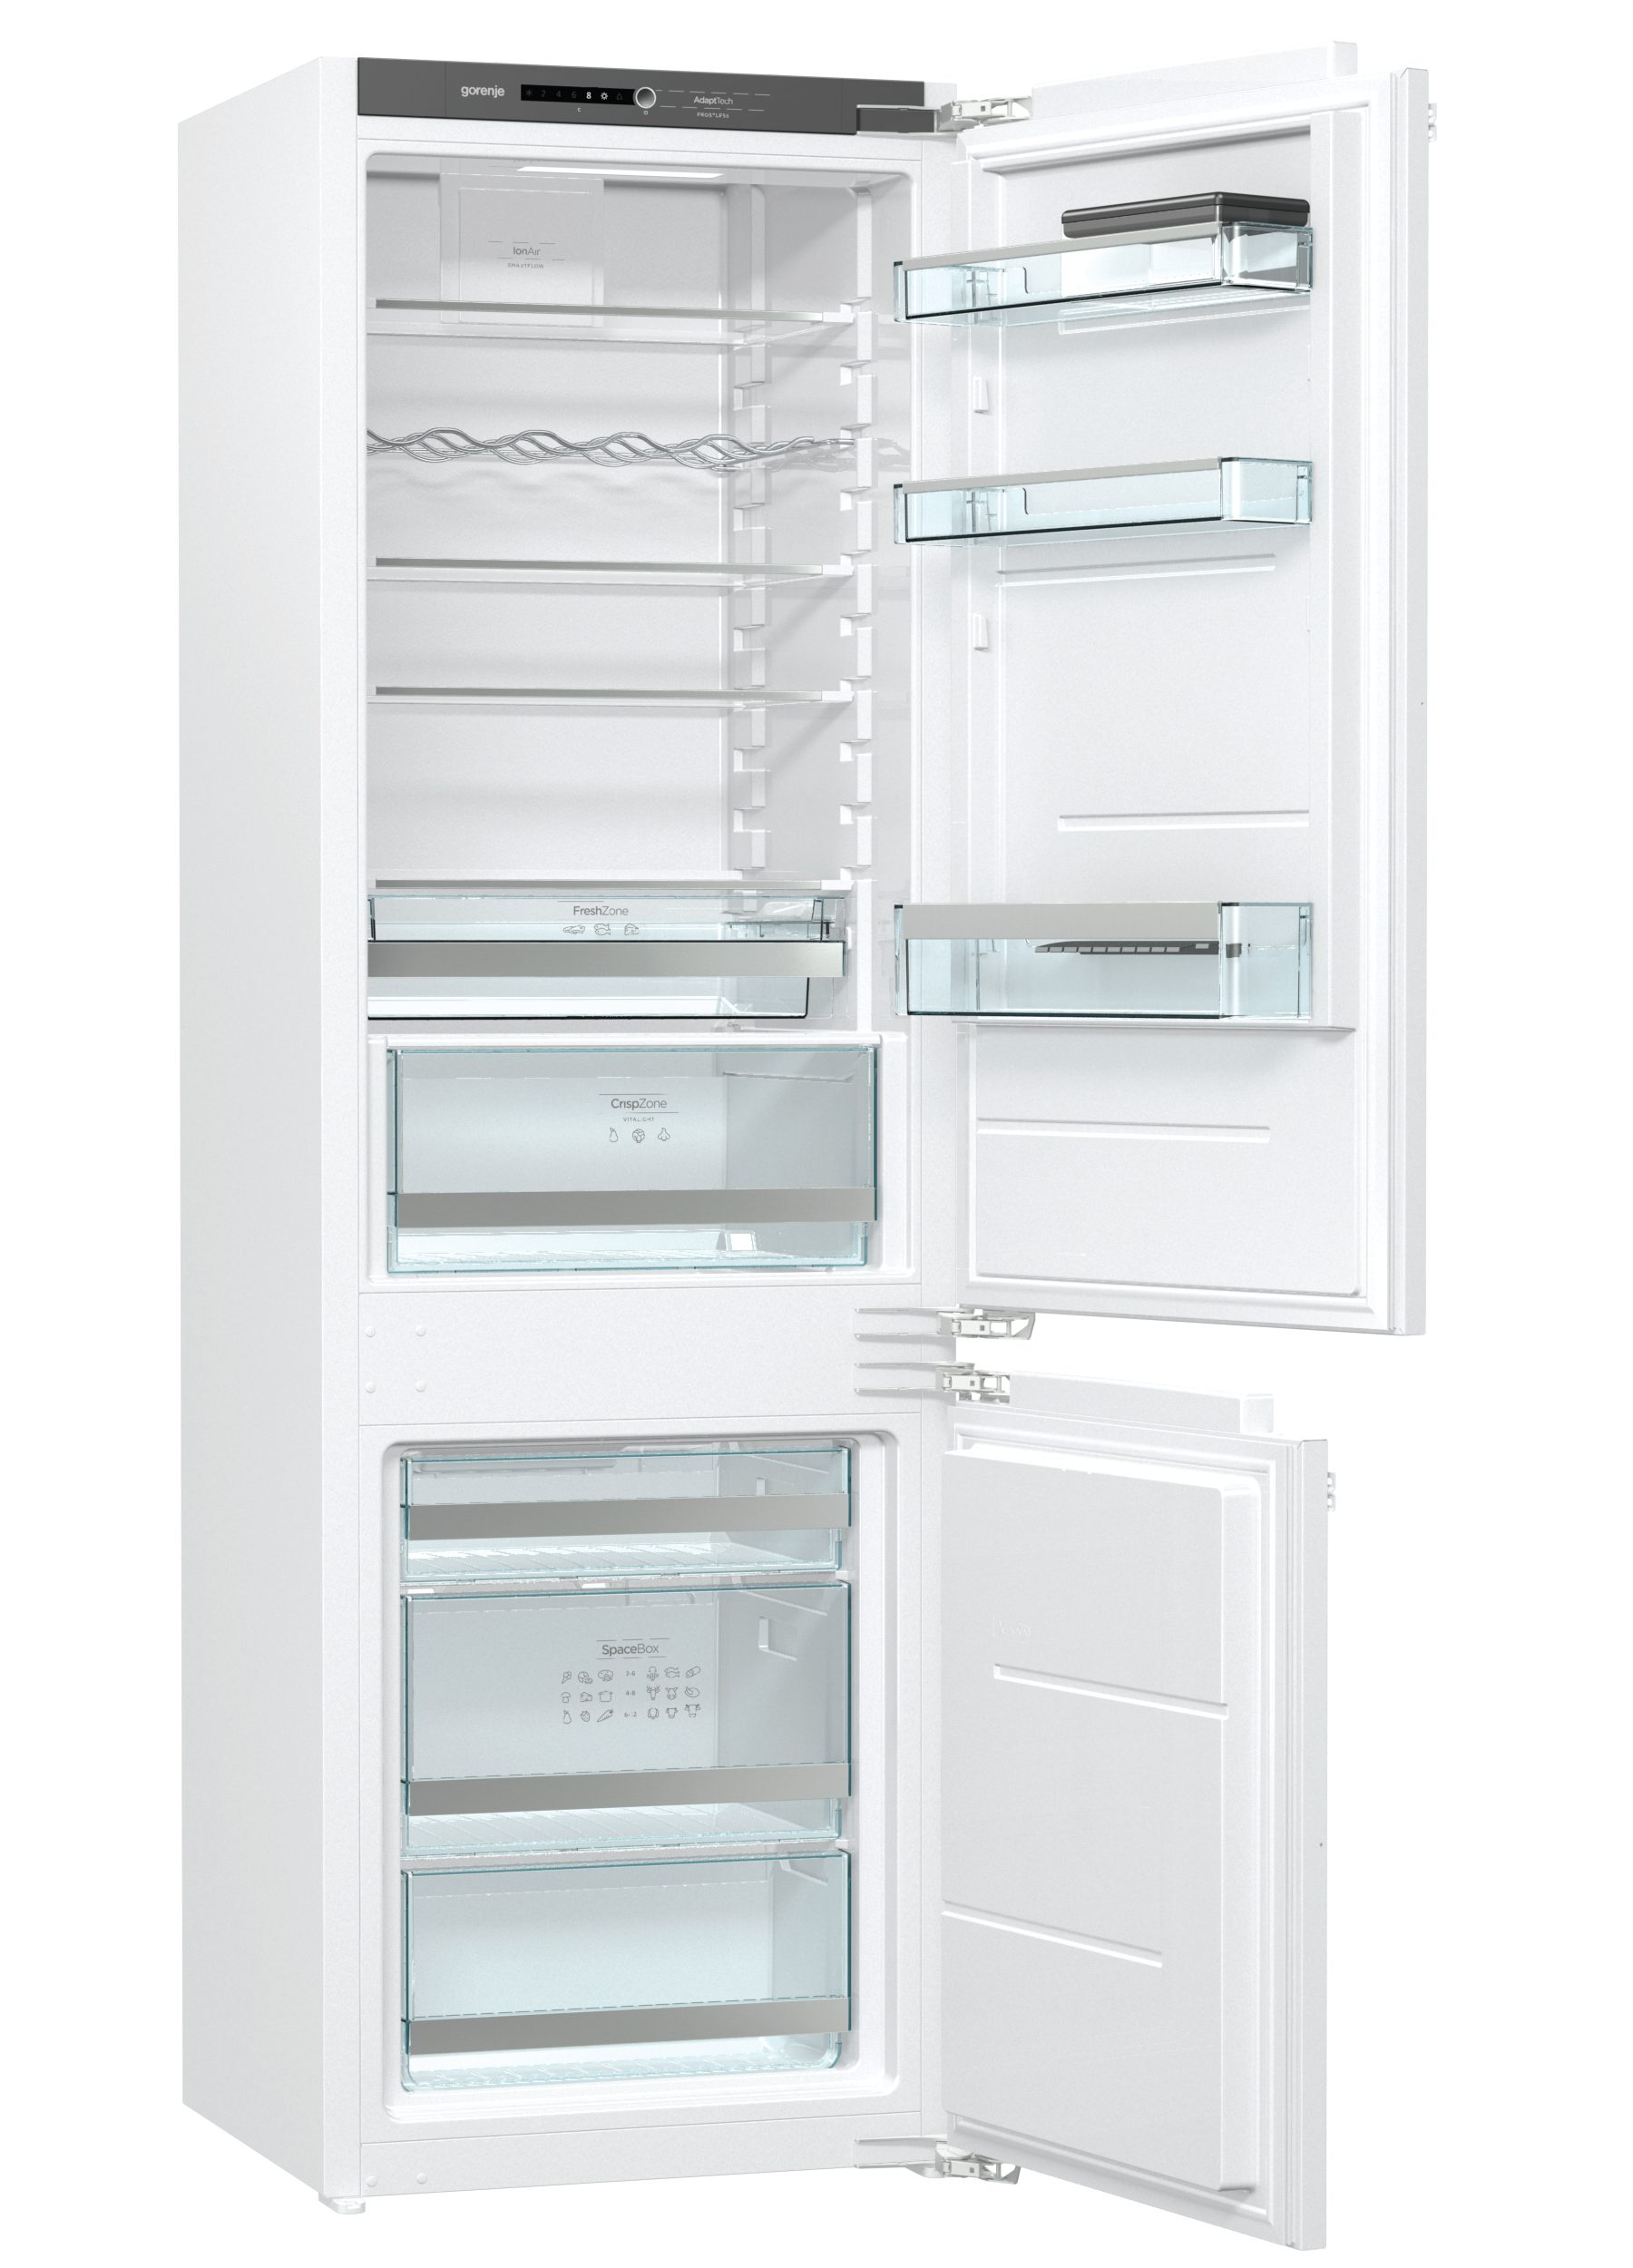 rki5183a1 builtin integrated fridge freezer